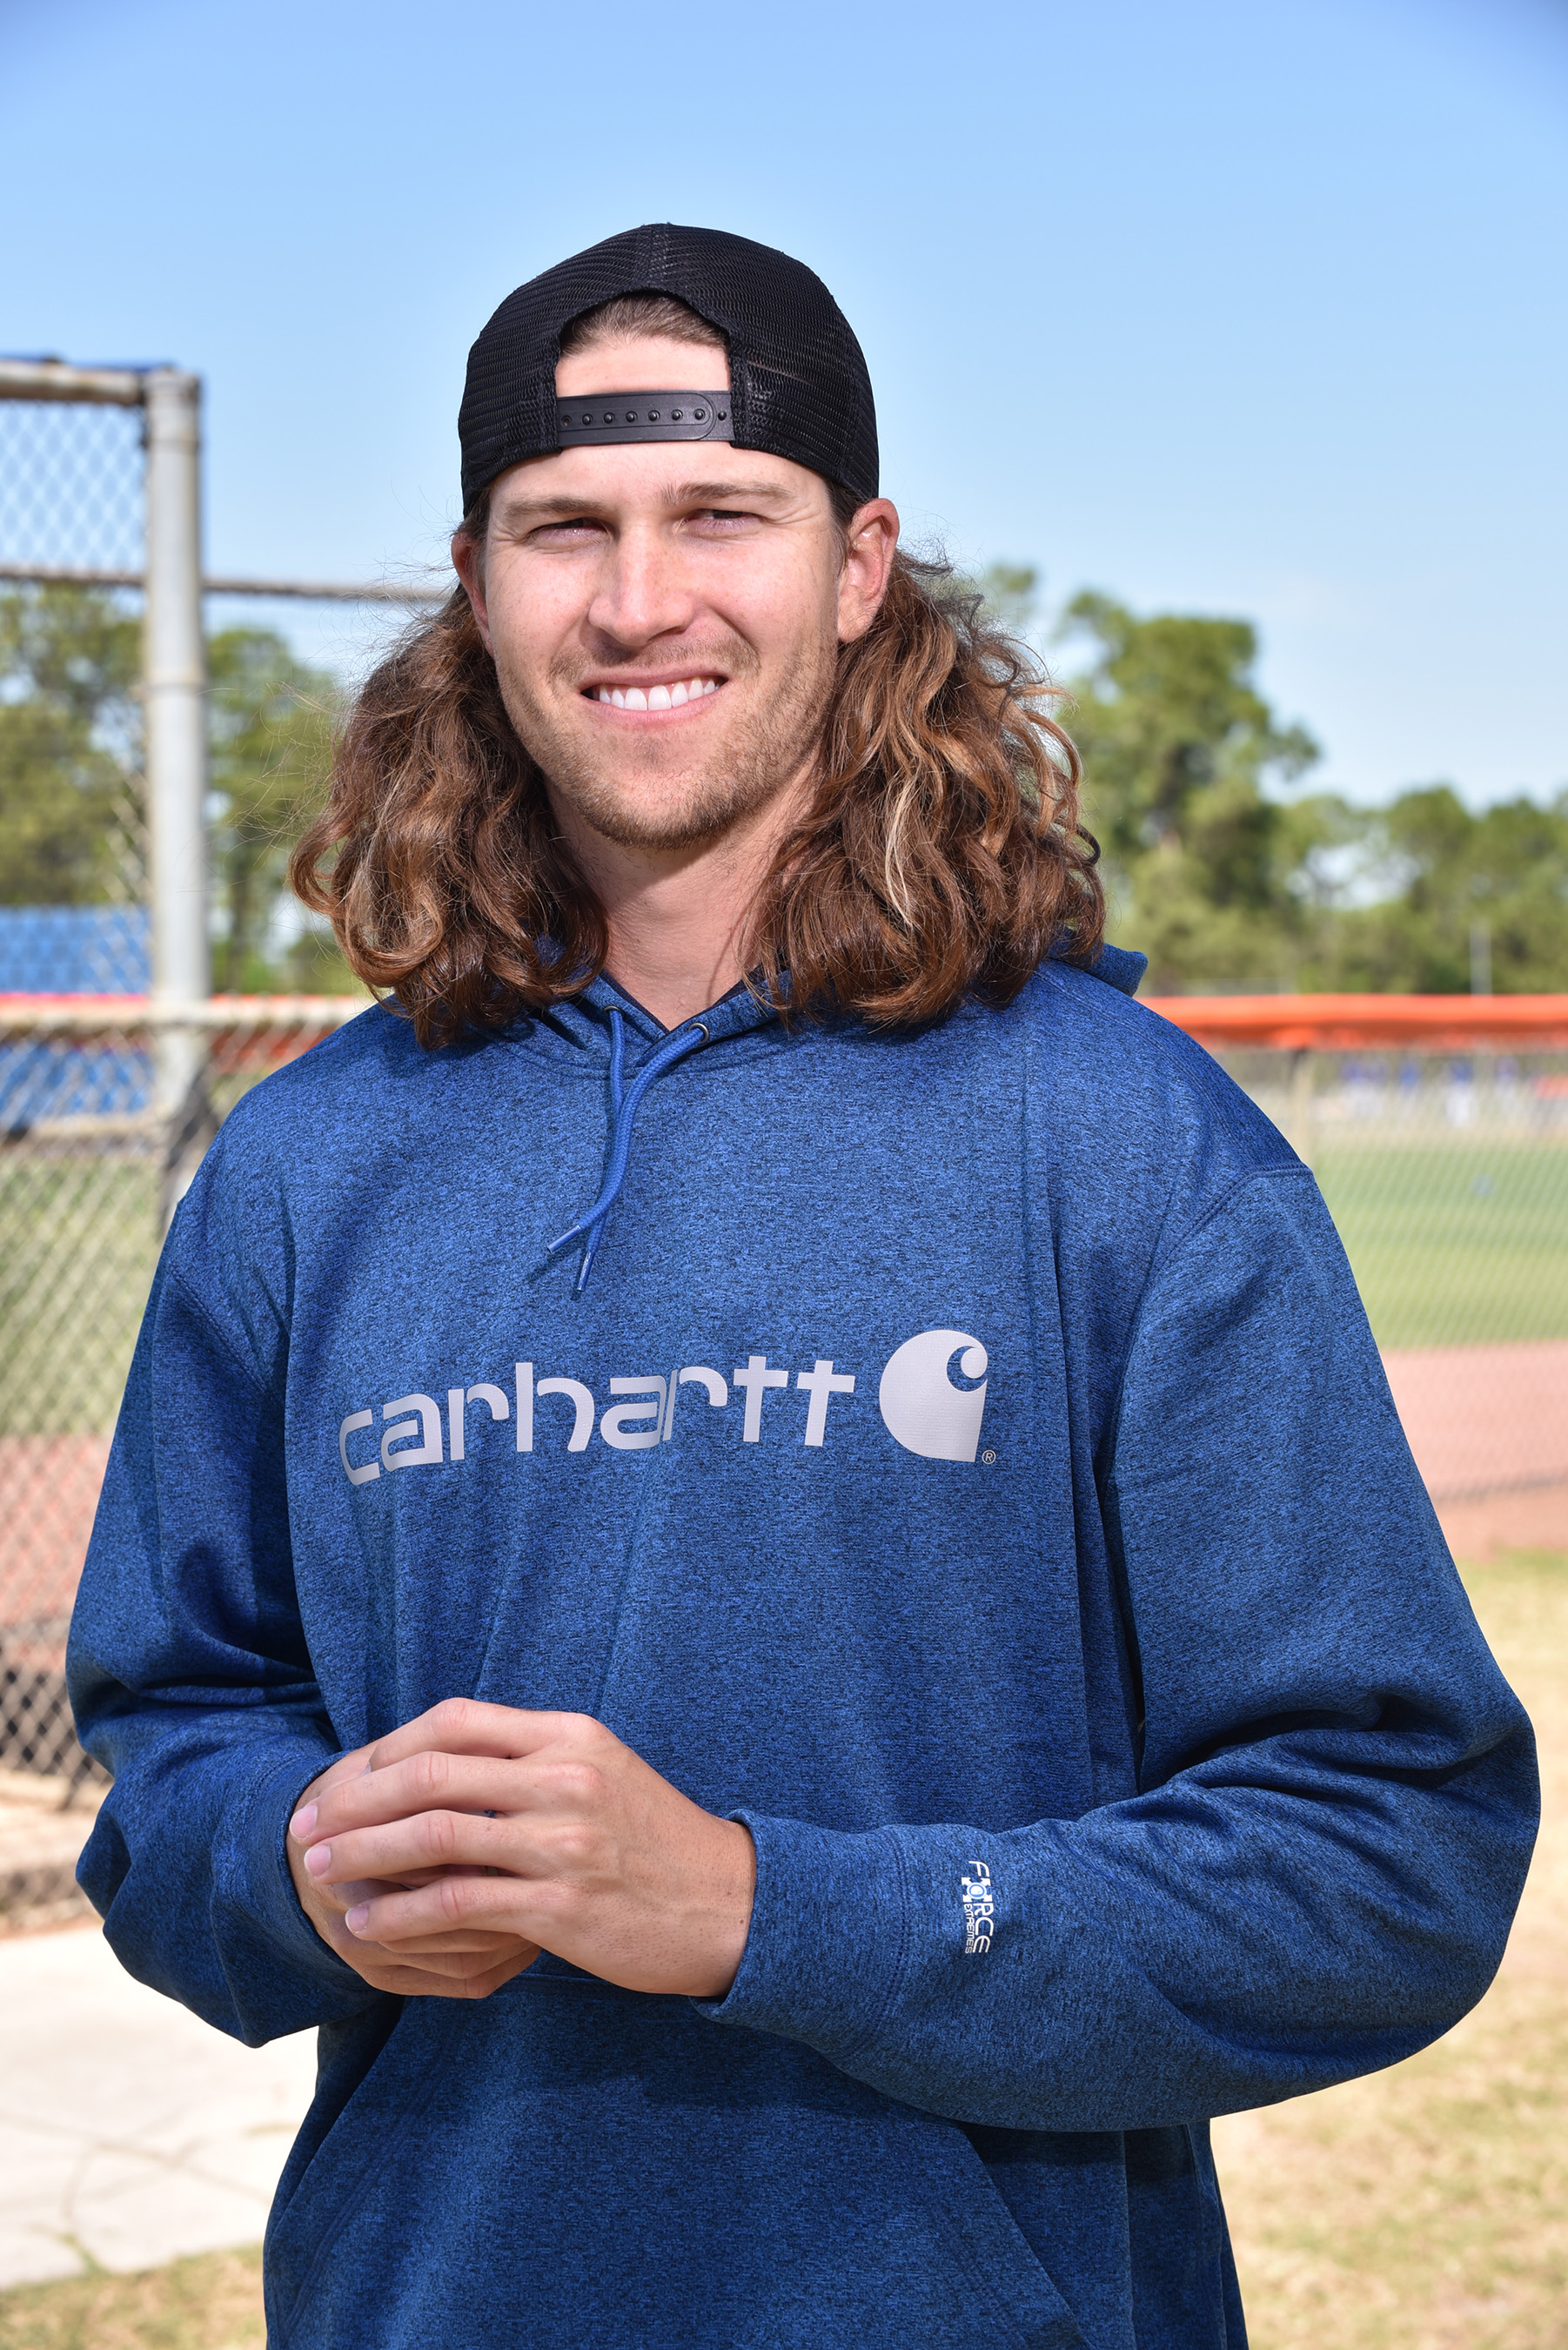 As a member of the 2017 Carhartt Starting Rotation, Jacob deGrom will help support Helmets to Hardhats by raising $100 for the organization for each strikeout he records during the 2017 baseball season.